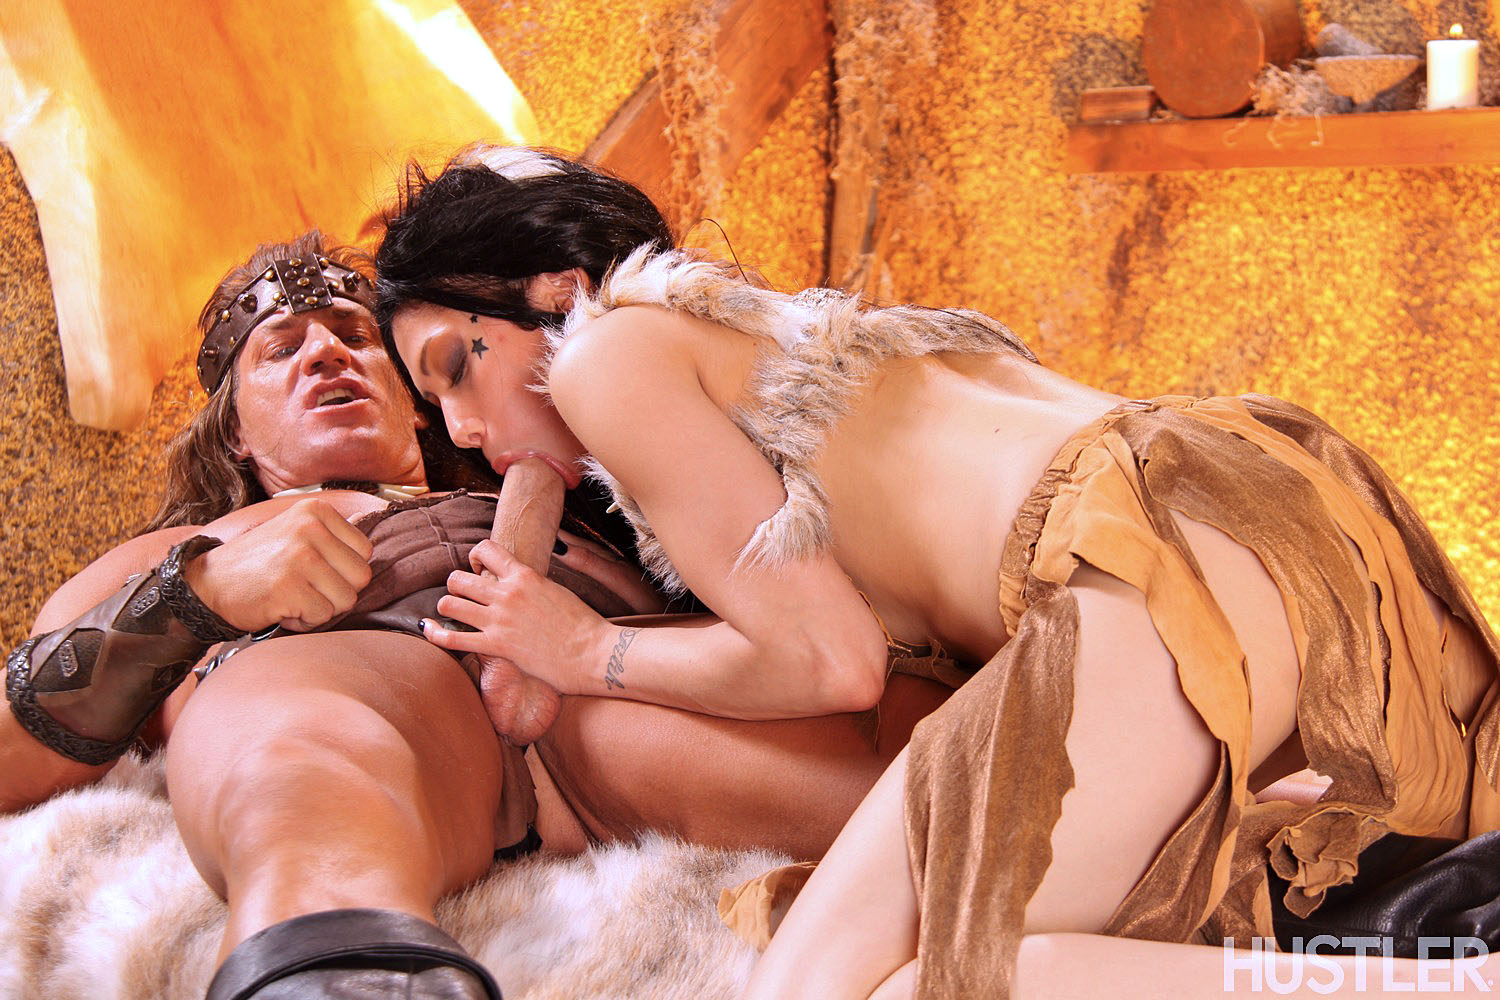 Barbarian fuck images sex films